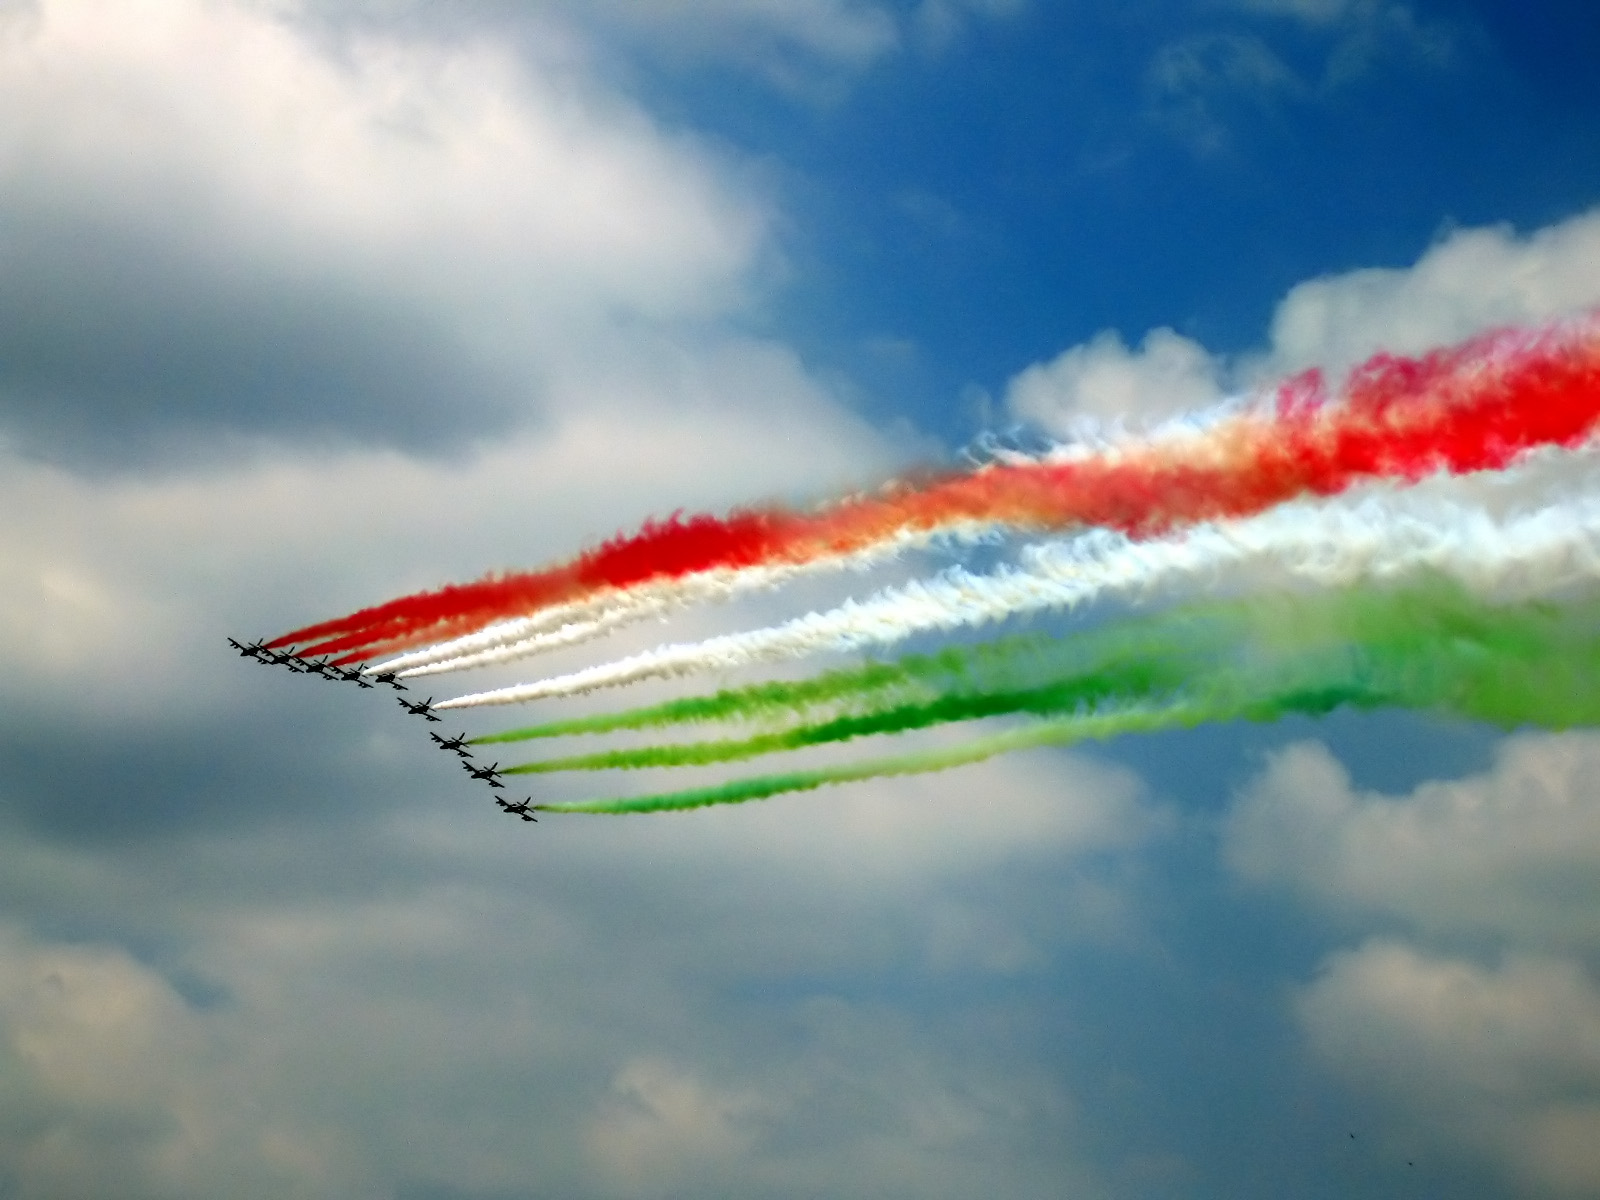 Indian Flag Hd Nature: Indian Flag HD Wallpaper -